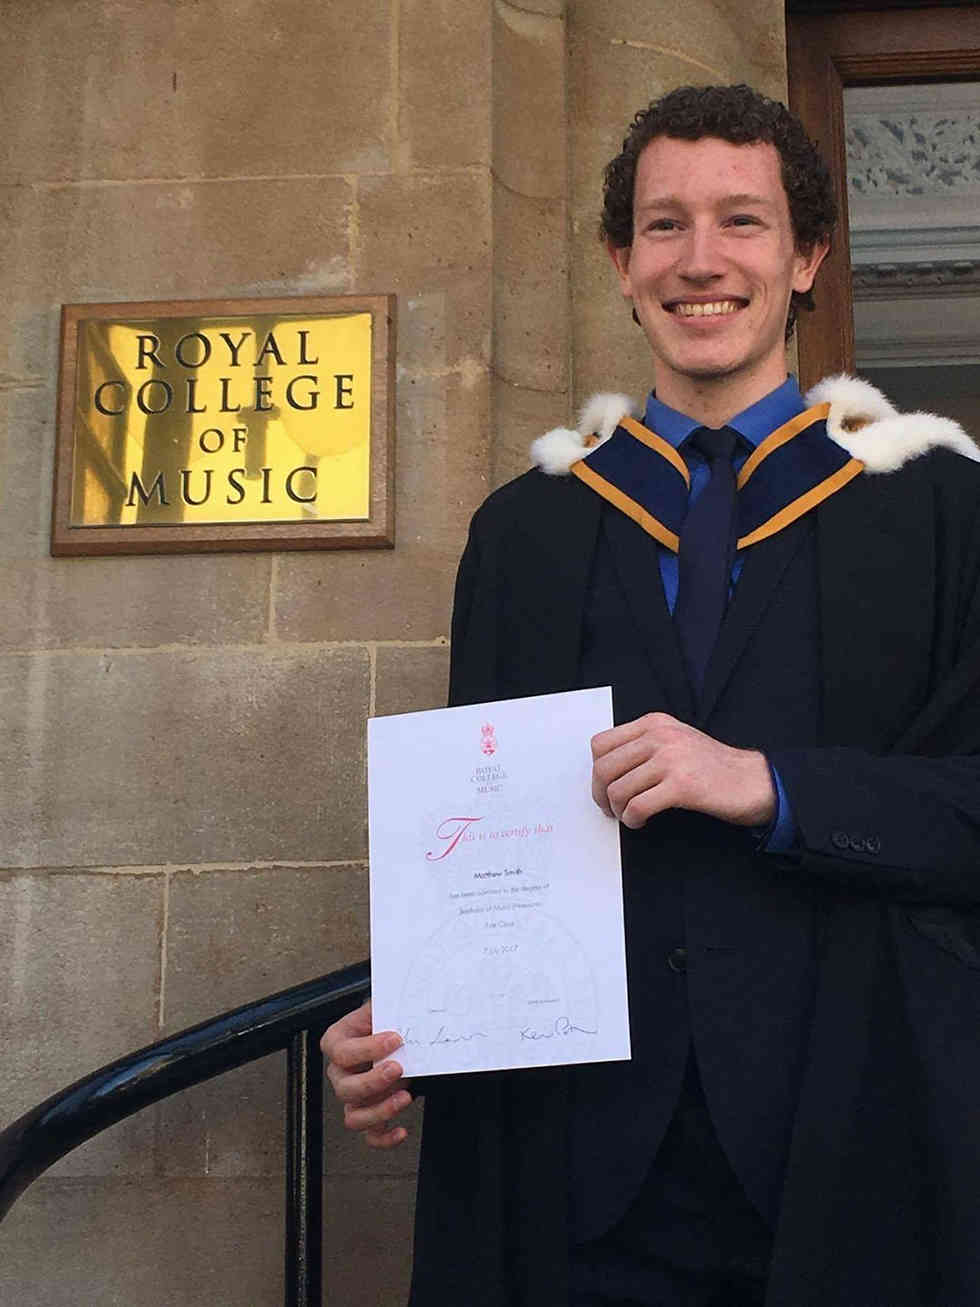 Graduating from the Royal College of Music